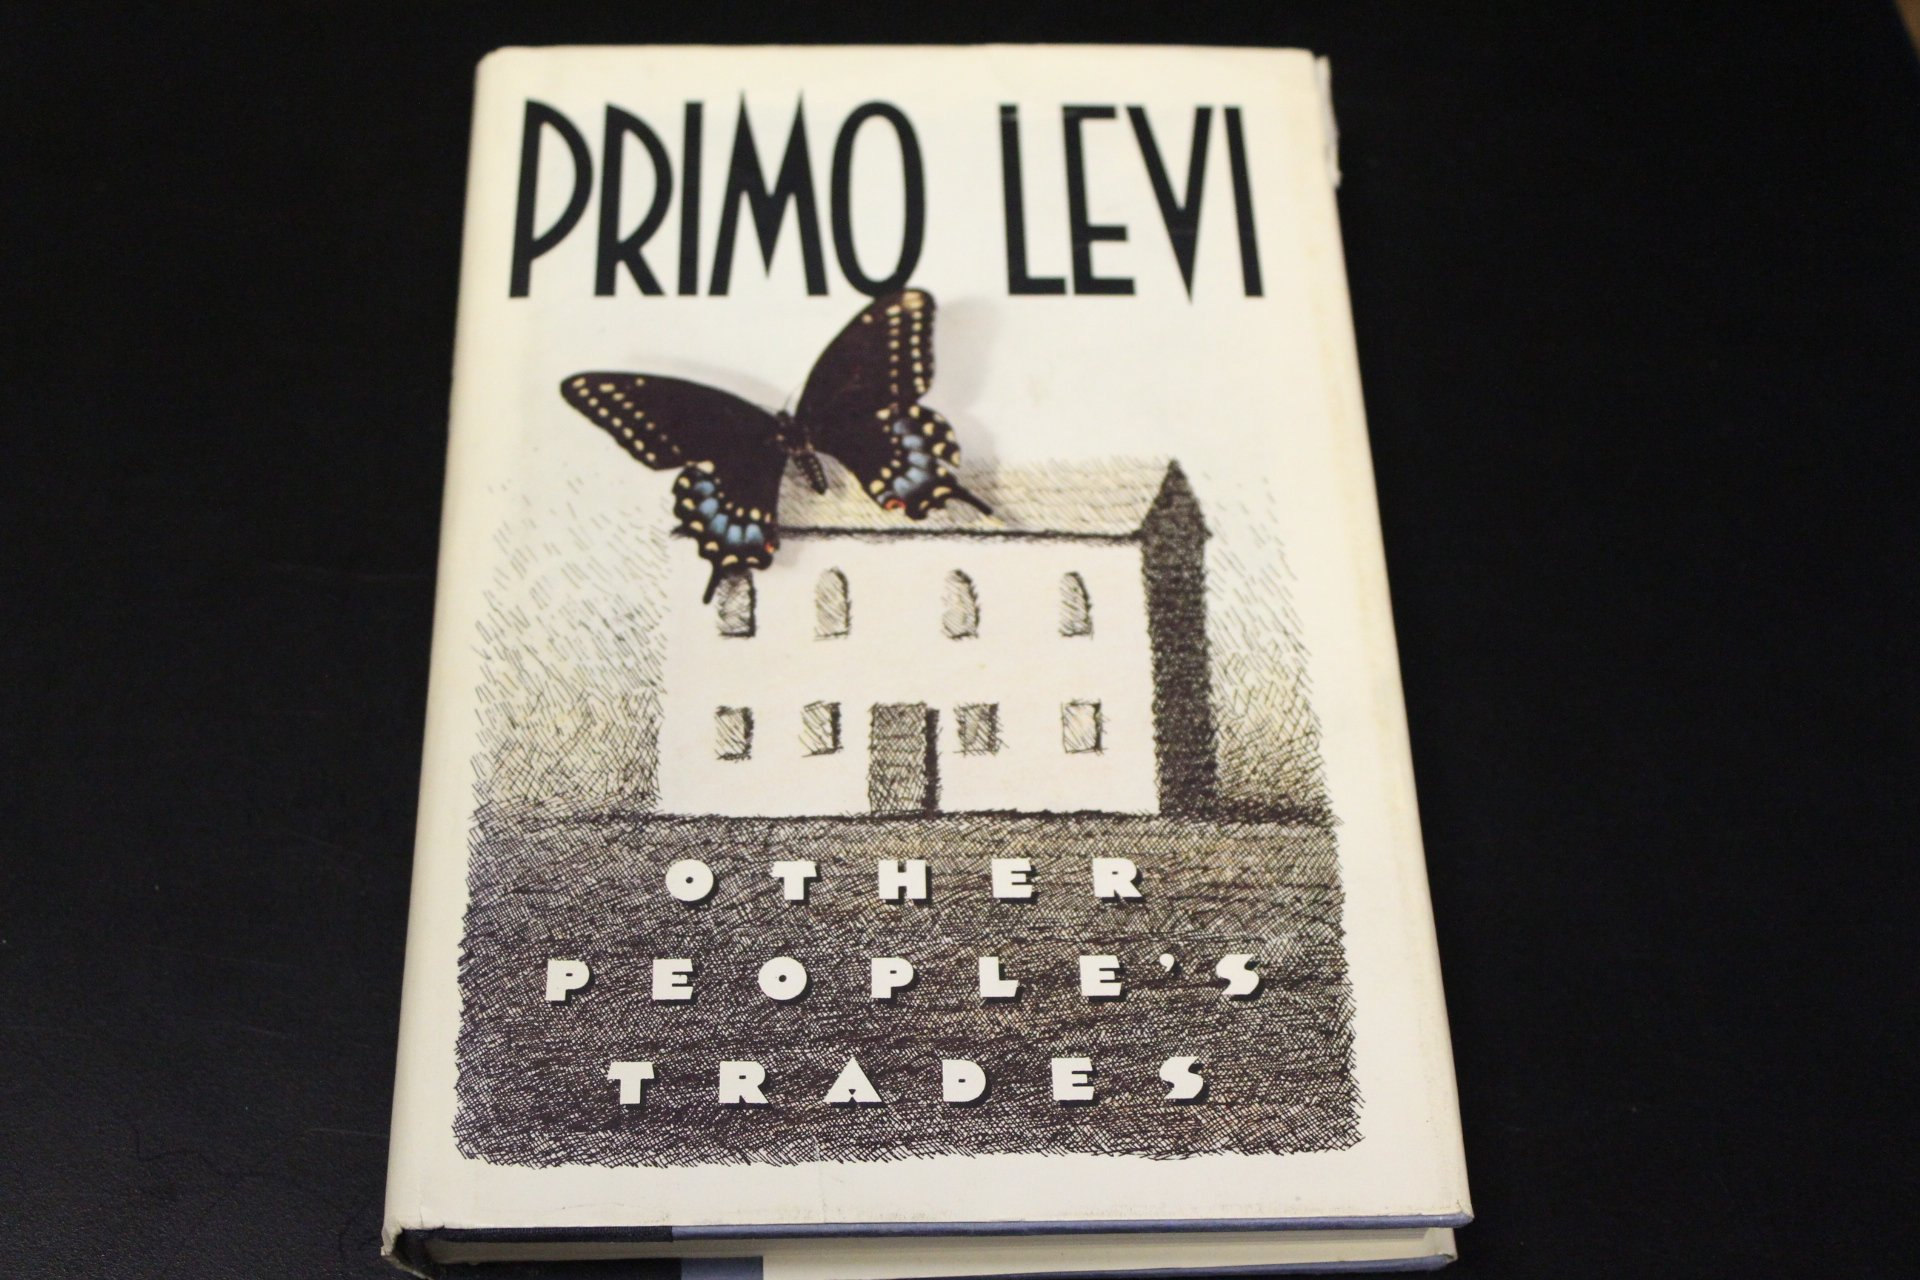 Other peoples trades english and italian edition primo levi other peoples trades english and italian edition primo levi 9780671611491 amazon books gamestrikefo Gallery